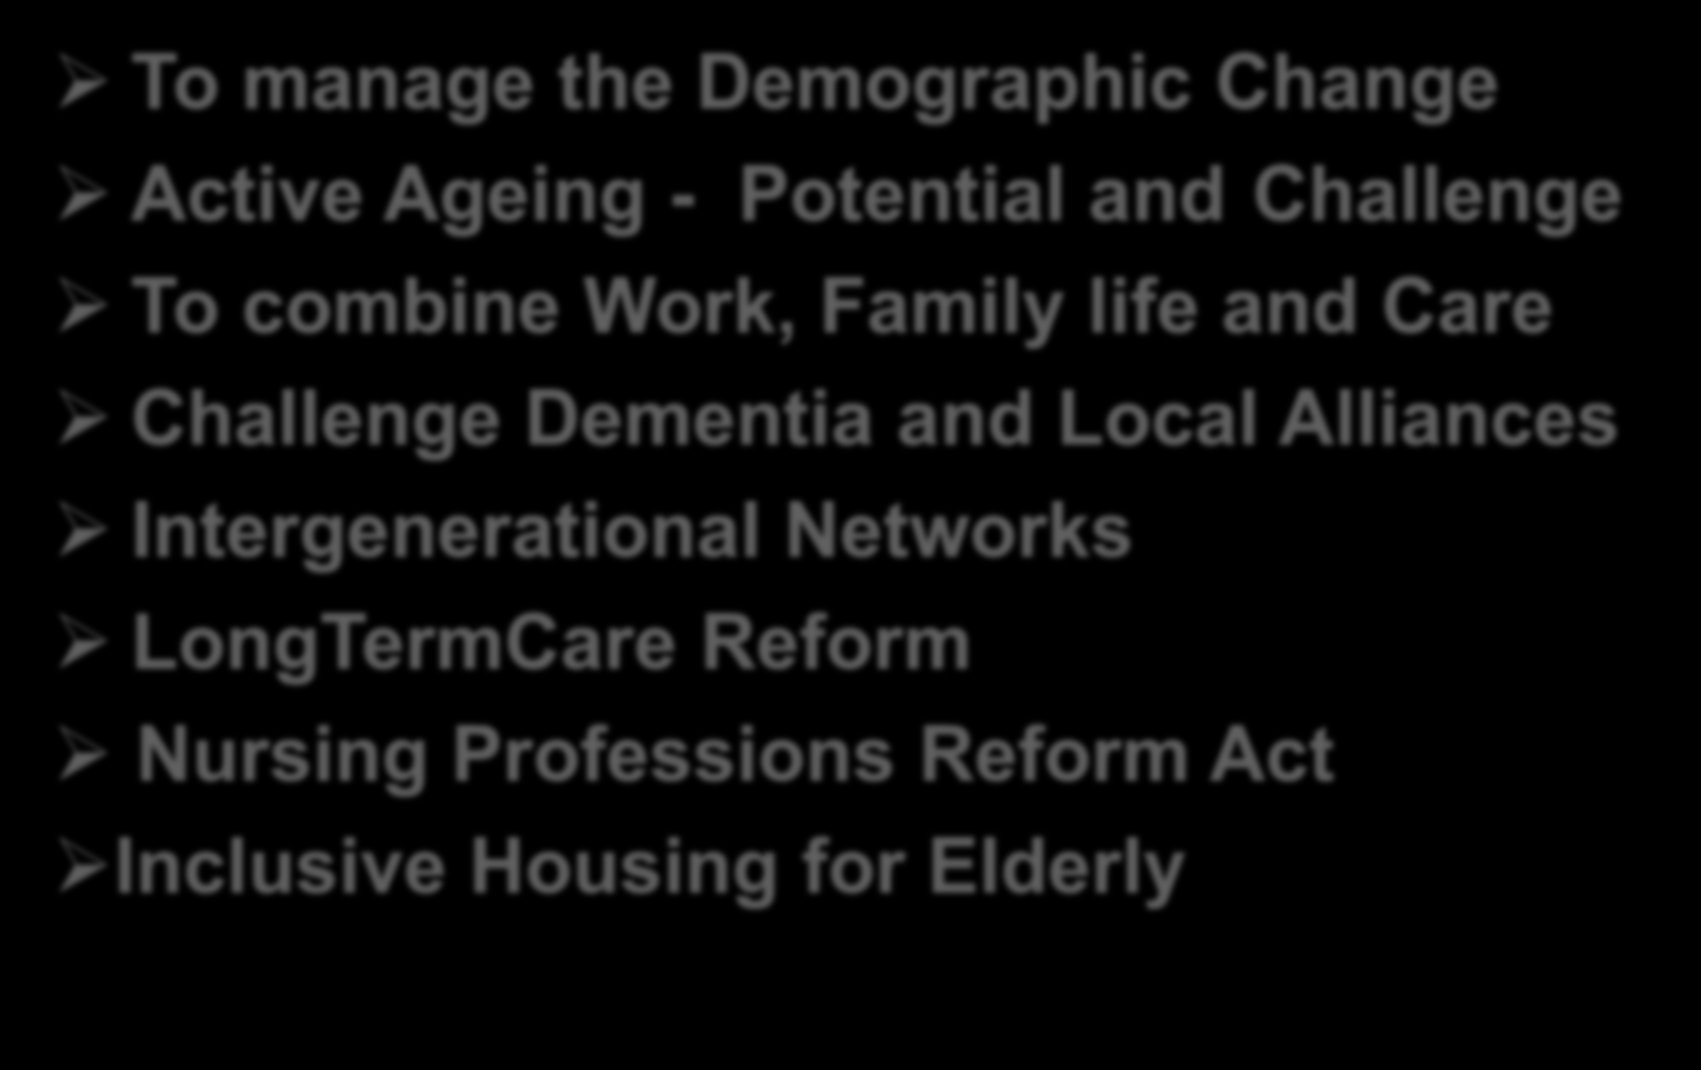 3 Overview Challenges To manage the Demographic Change Active Ageing - Potential and Challenge To combine Work, Family life and Care